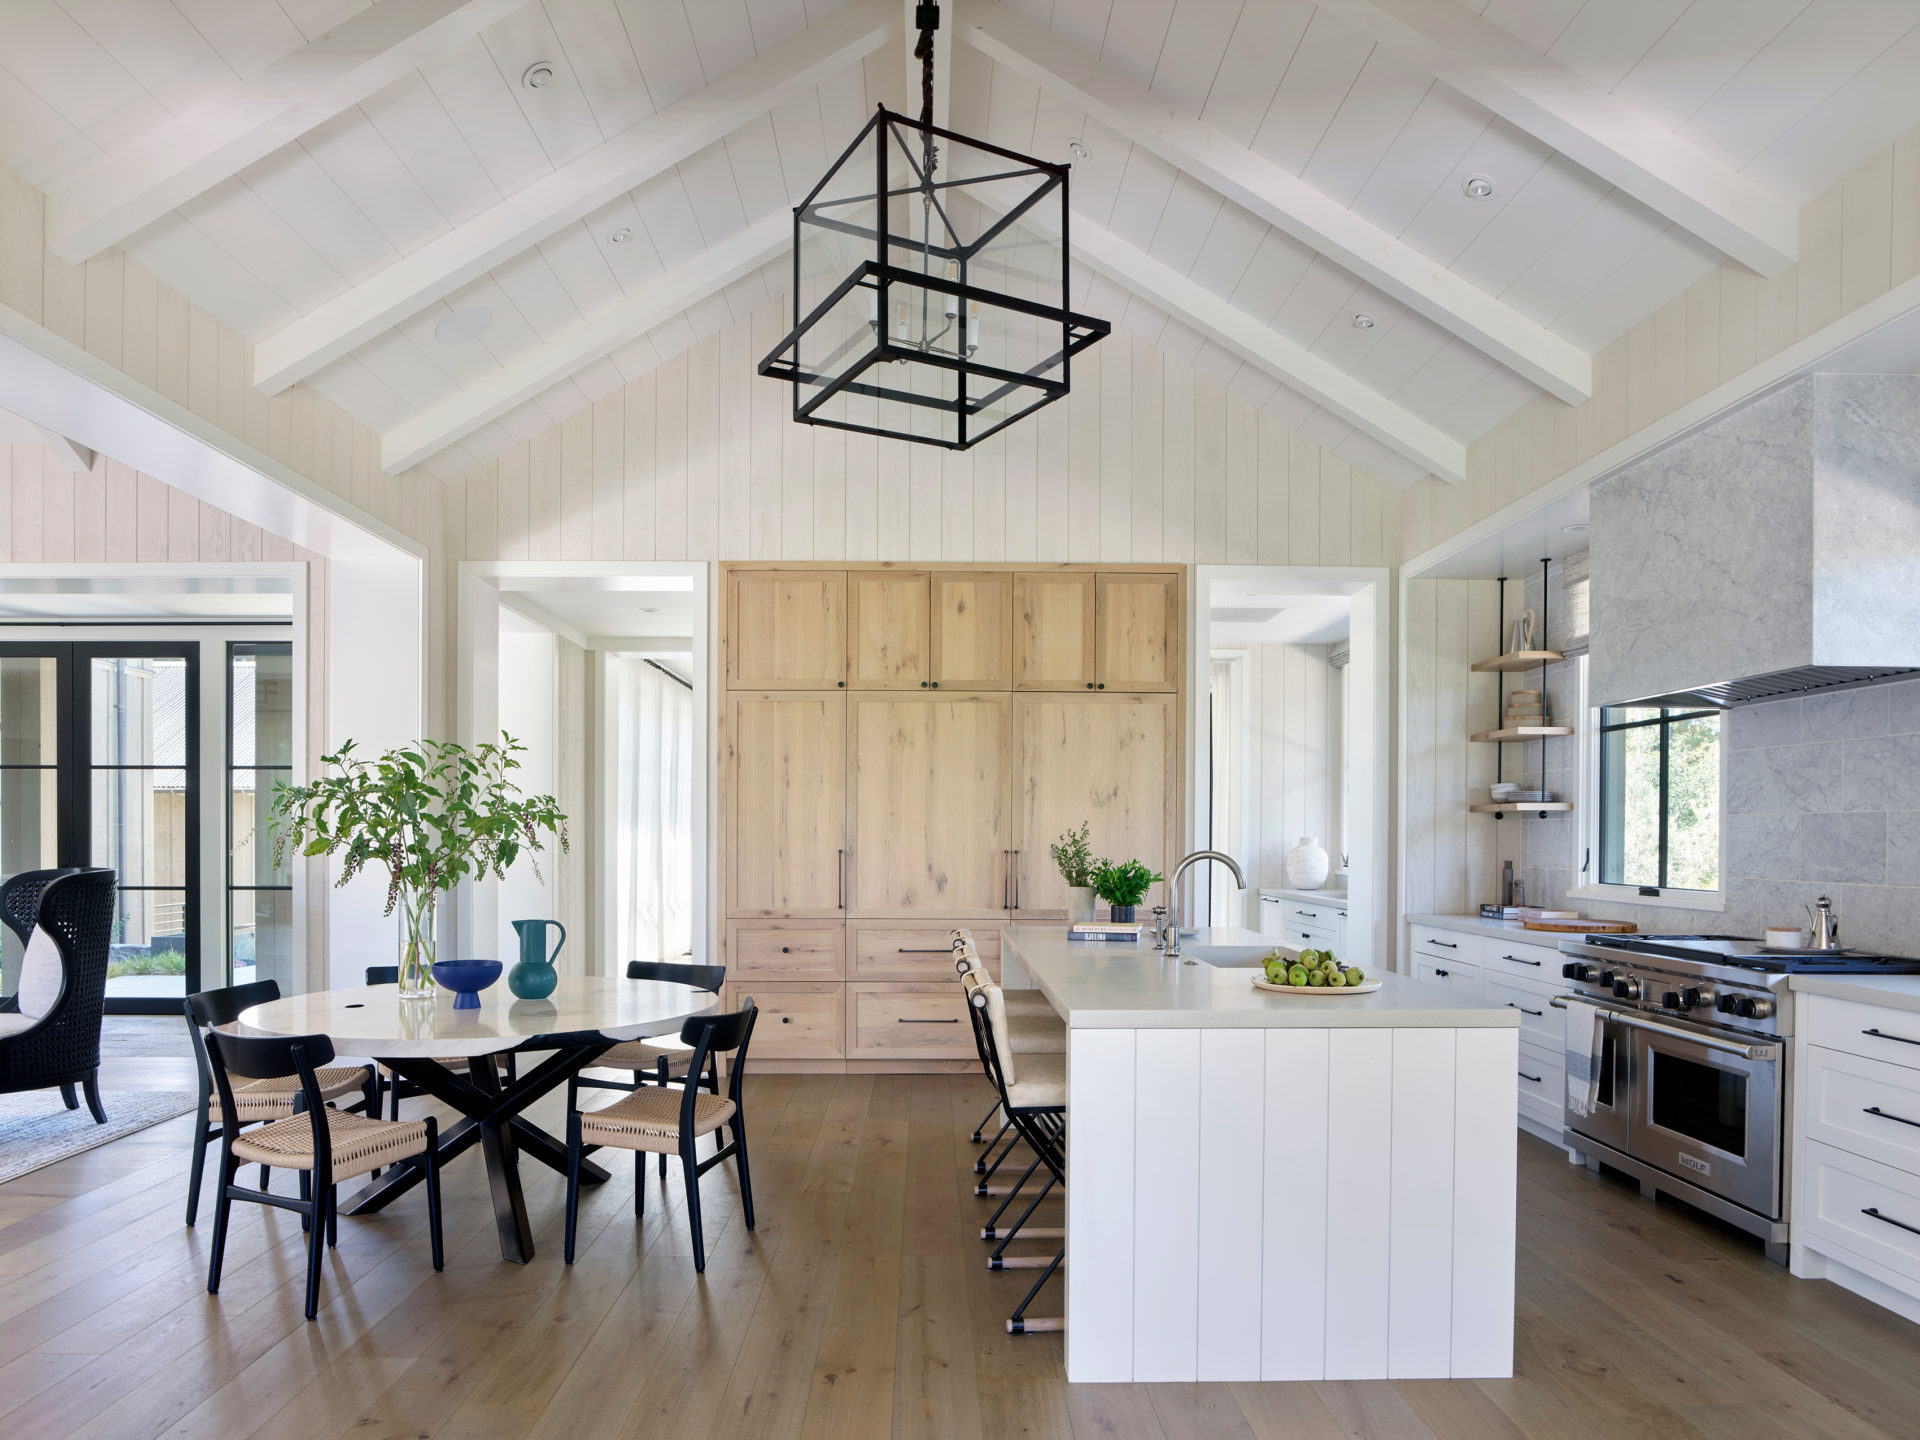 Jennifer_robins_interiors_projects_pacific_heights_portola_valley_1Portola_08_HR_living_kithcen_dinette_ws